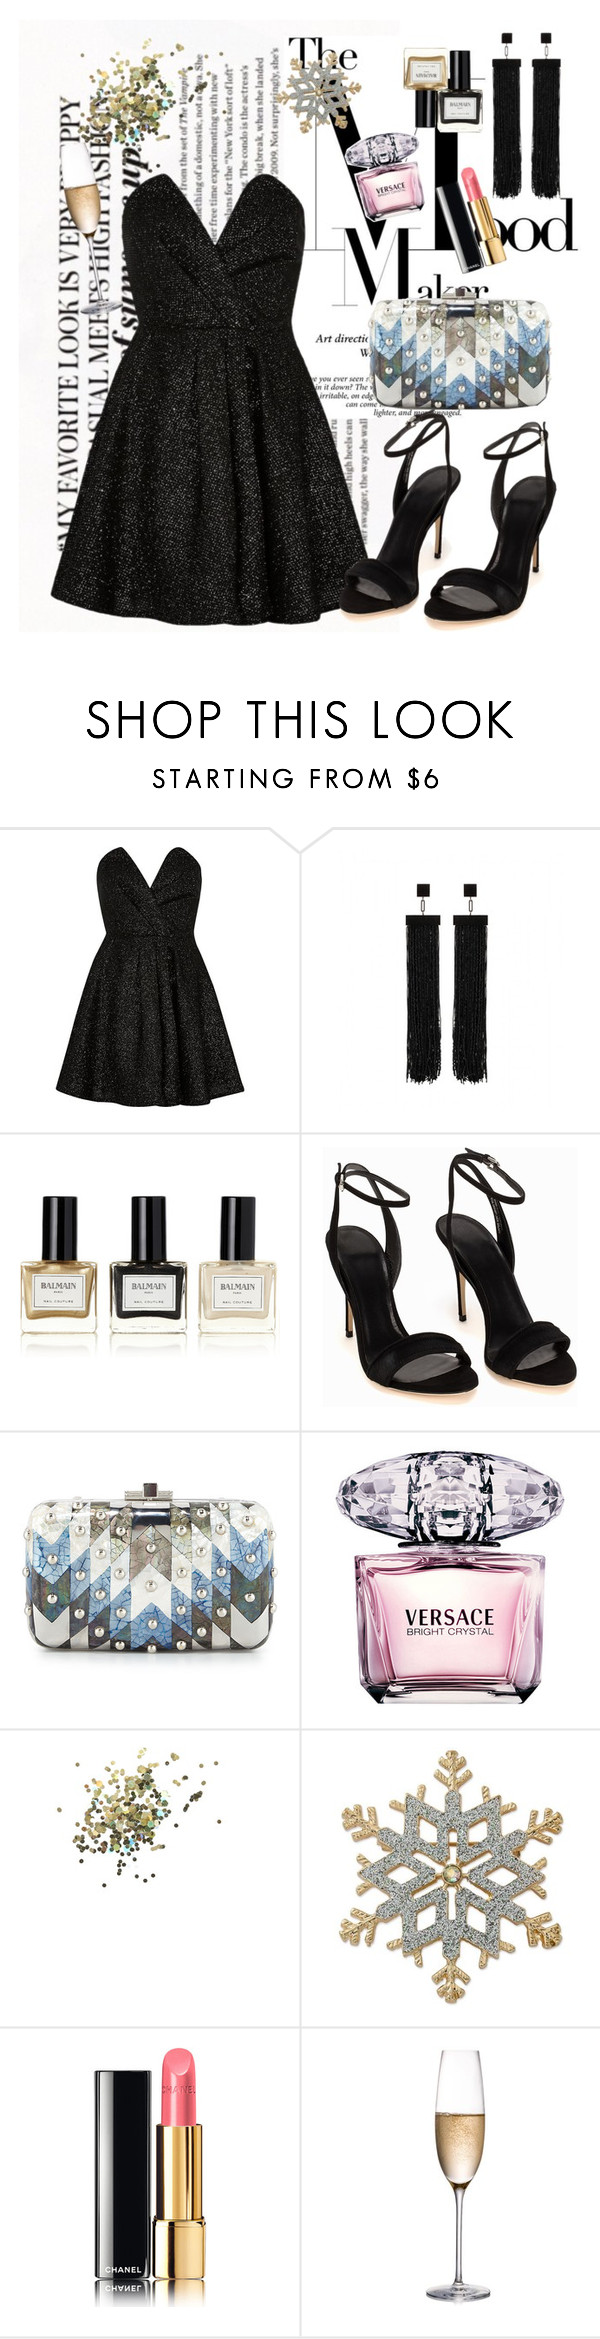 """""""Untitled #1074"""" by ekozlova ❤ liked on Polyvore featuring River Island, Tom Ford, Balmain, Judith Leiber, Versace, Topshop, Kim Rogers, Chanel and Rogaska"""